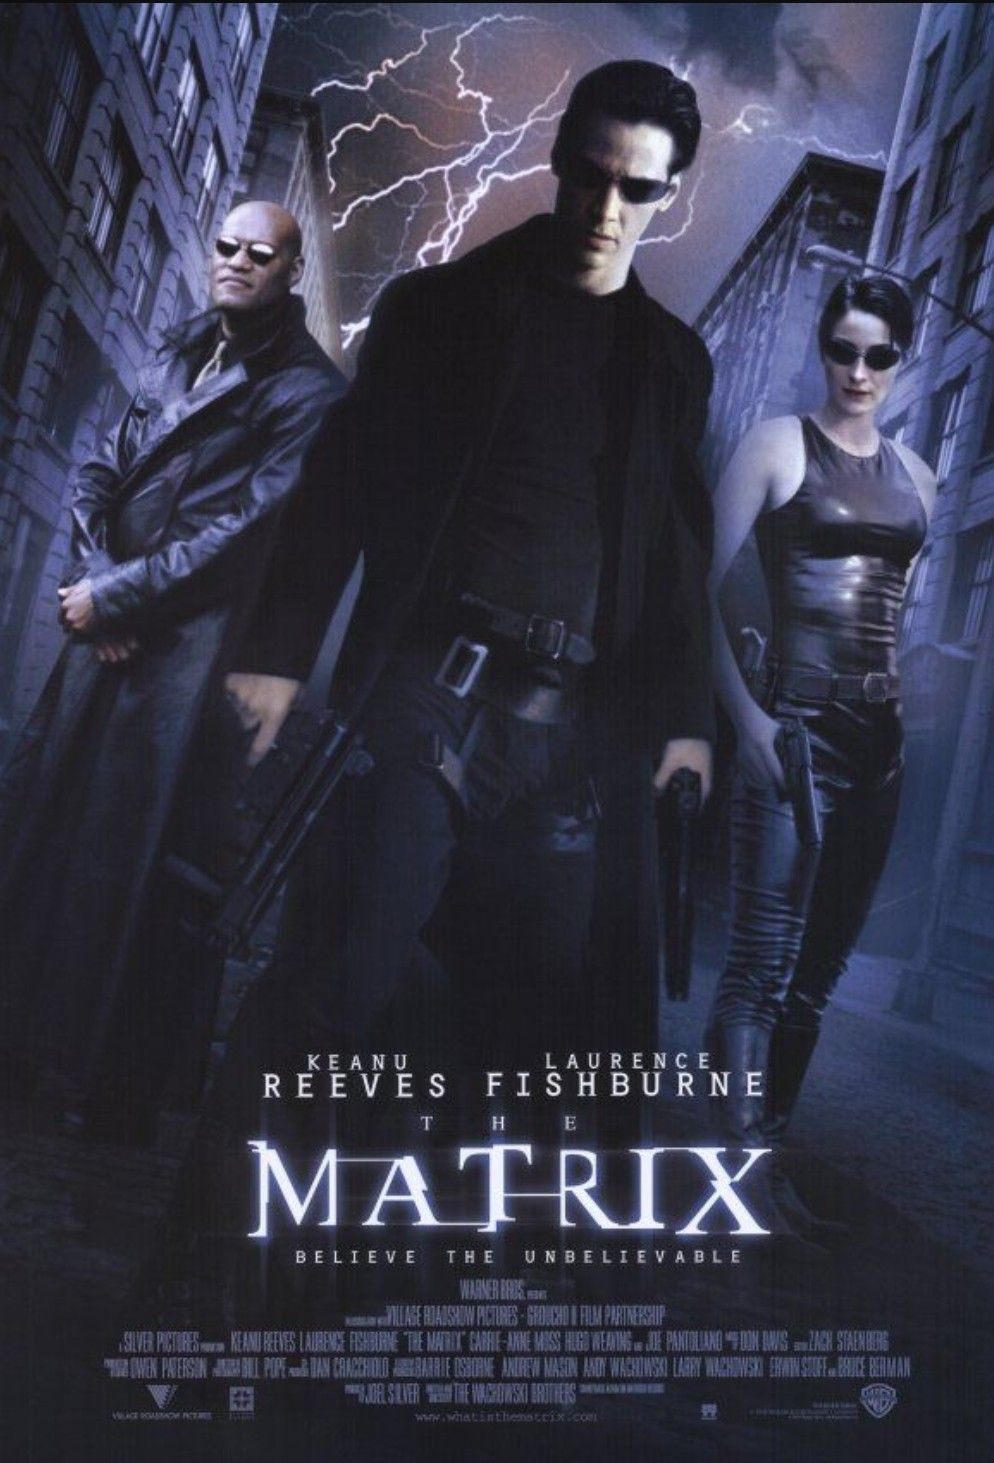 The Matrix 1999 The Matrix Movie Best Action Movies Movie Posters